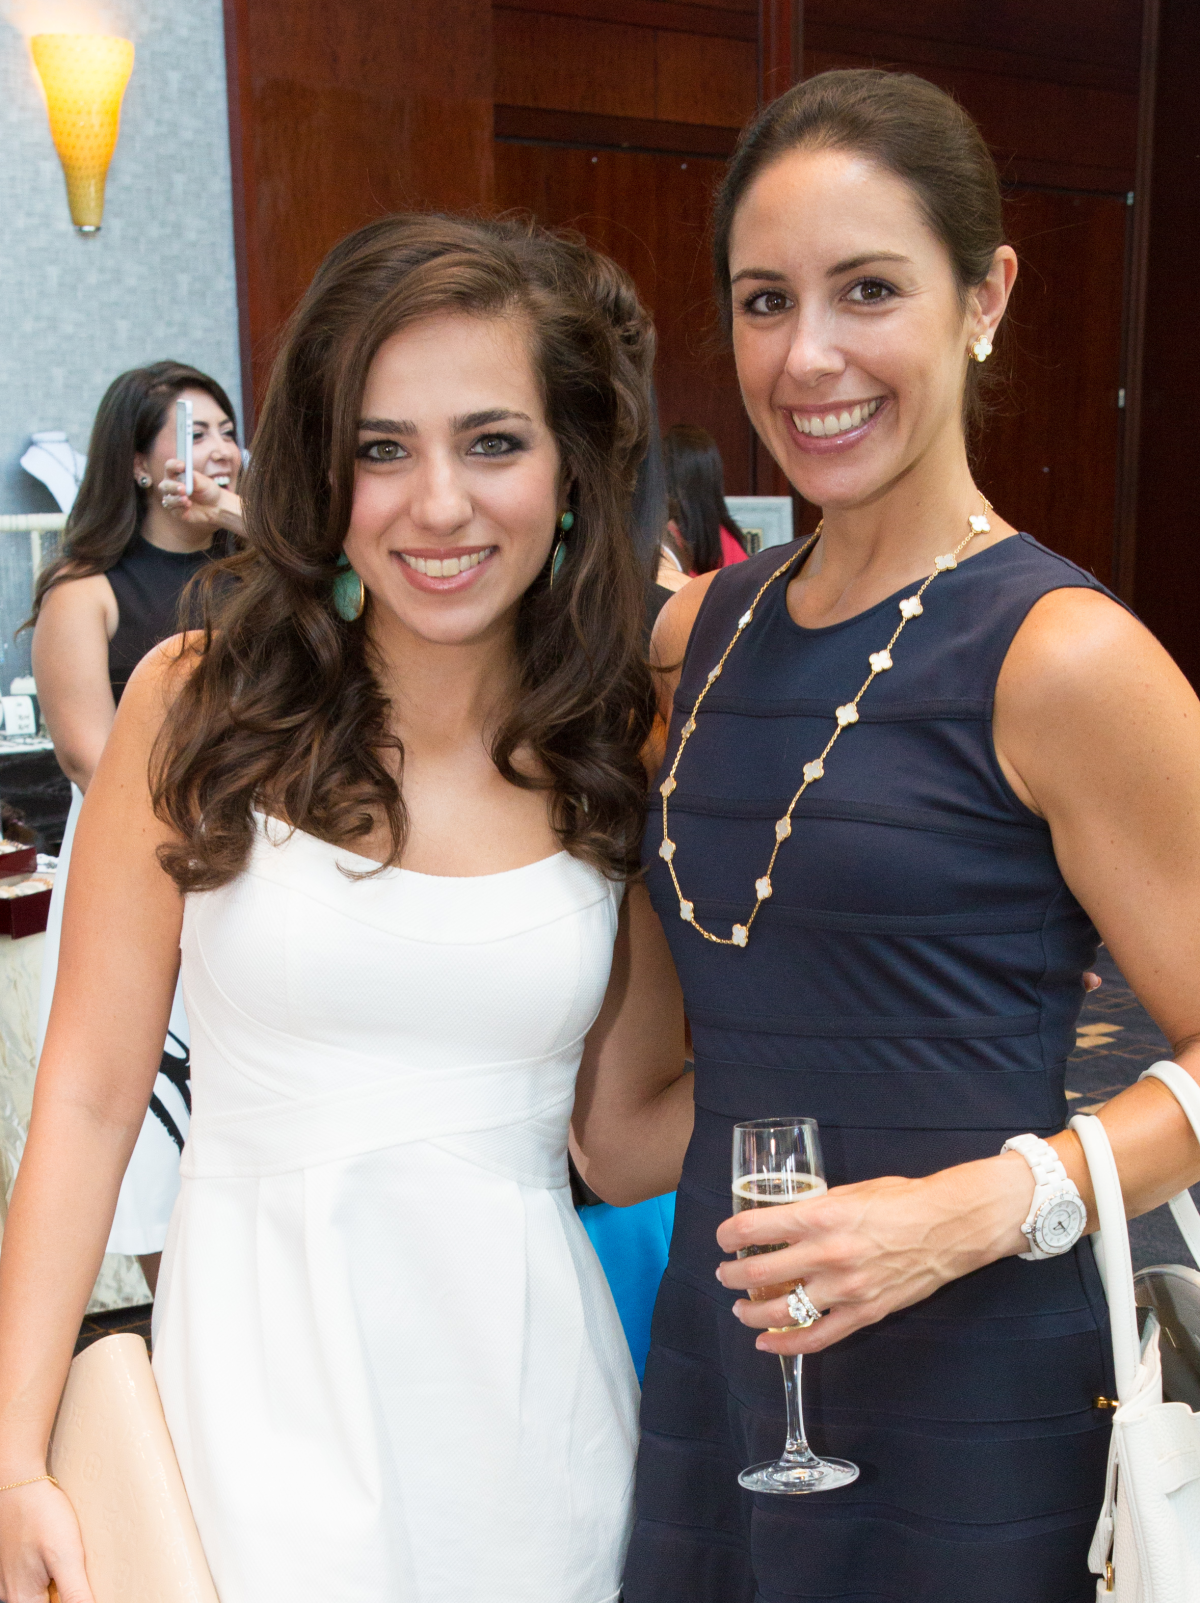 Houston, Woman's Hospital of Texas Labor Day Luncheon, August 2015, Jenan Adham, Lindsey Amiralai